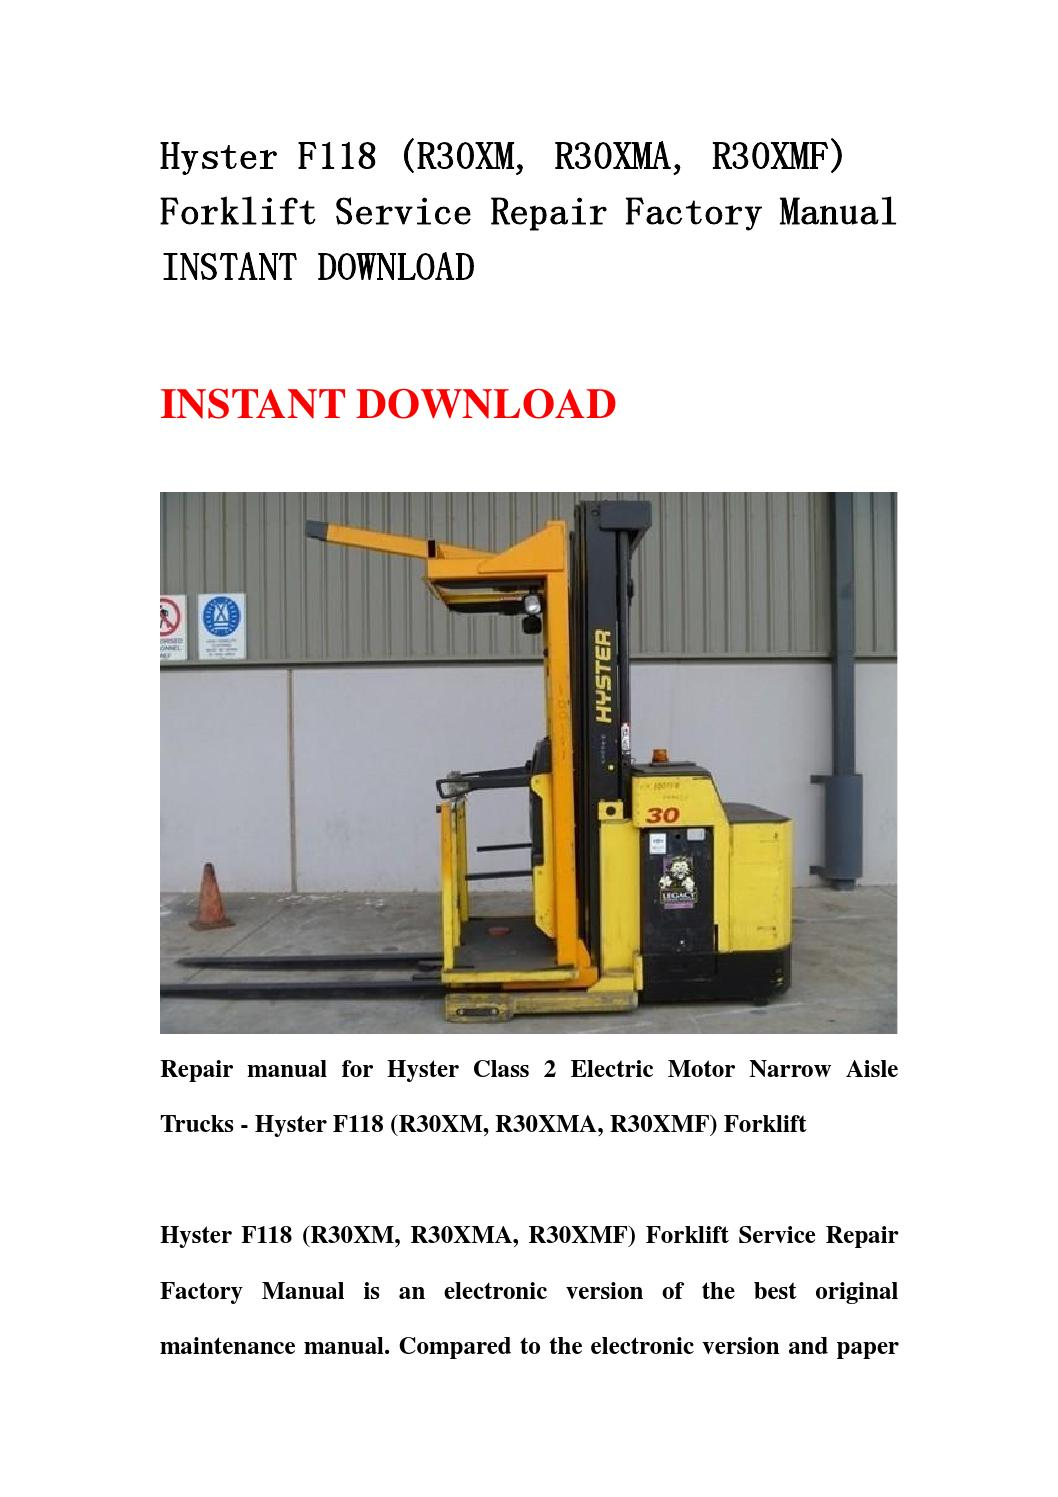 Hyster F118  R30xm  R30xma  R30xmf  Forklift Service